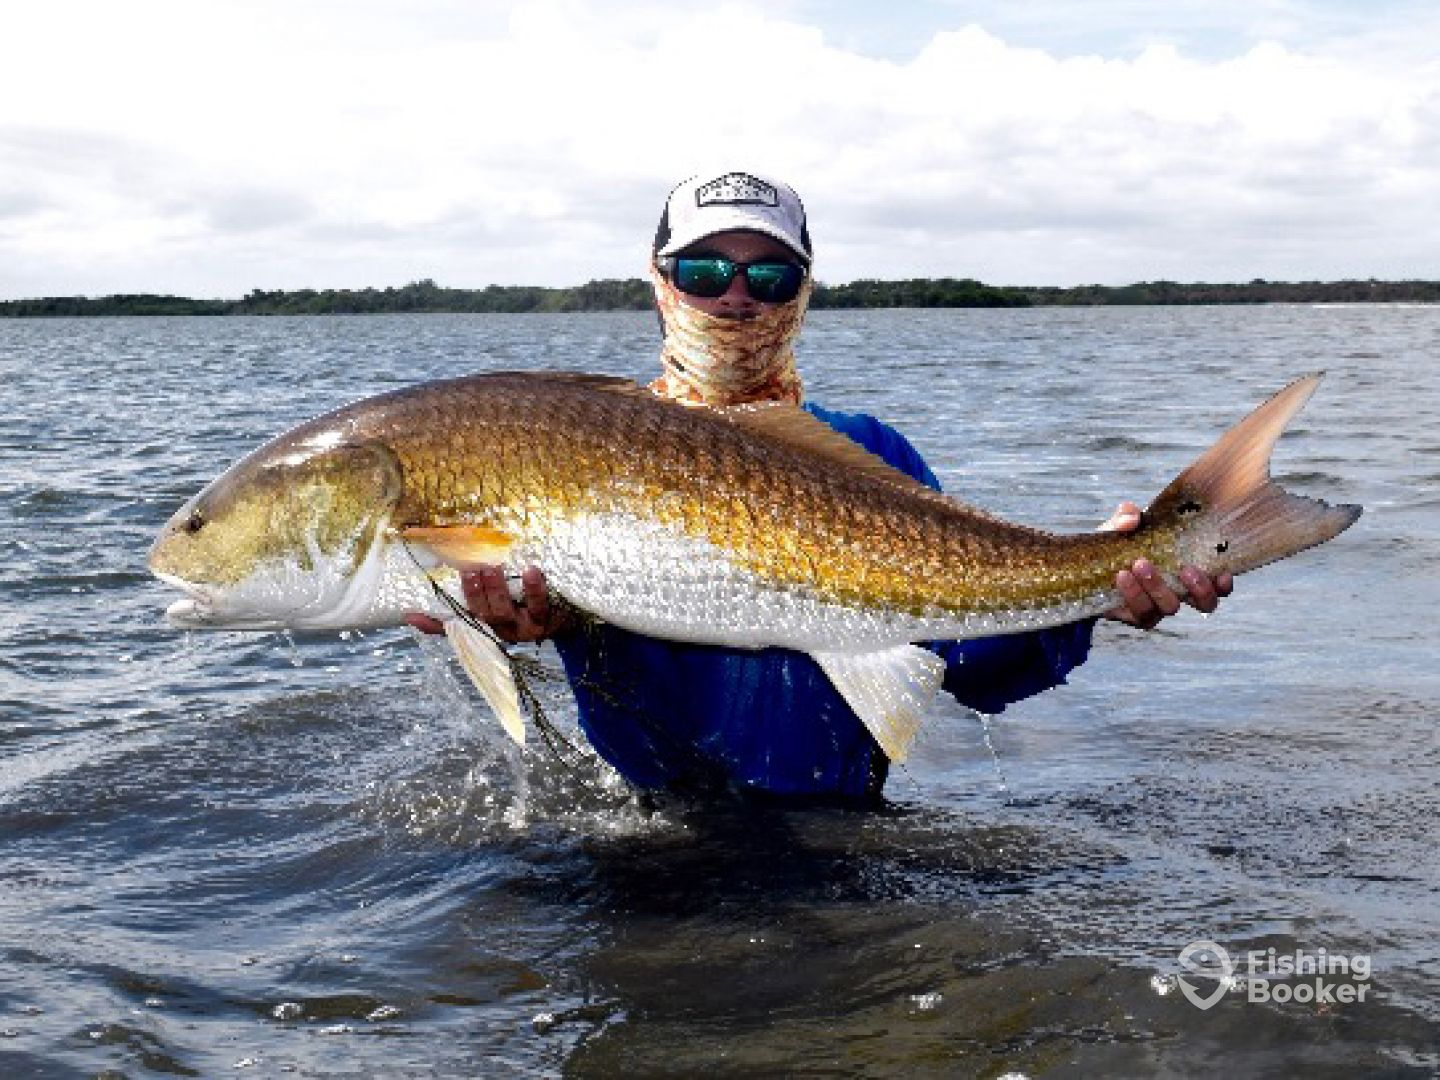 Schooled up redfish charters orlando fl fishingbooker for How to fish for redfish